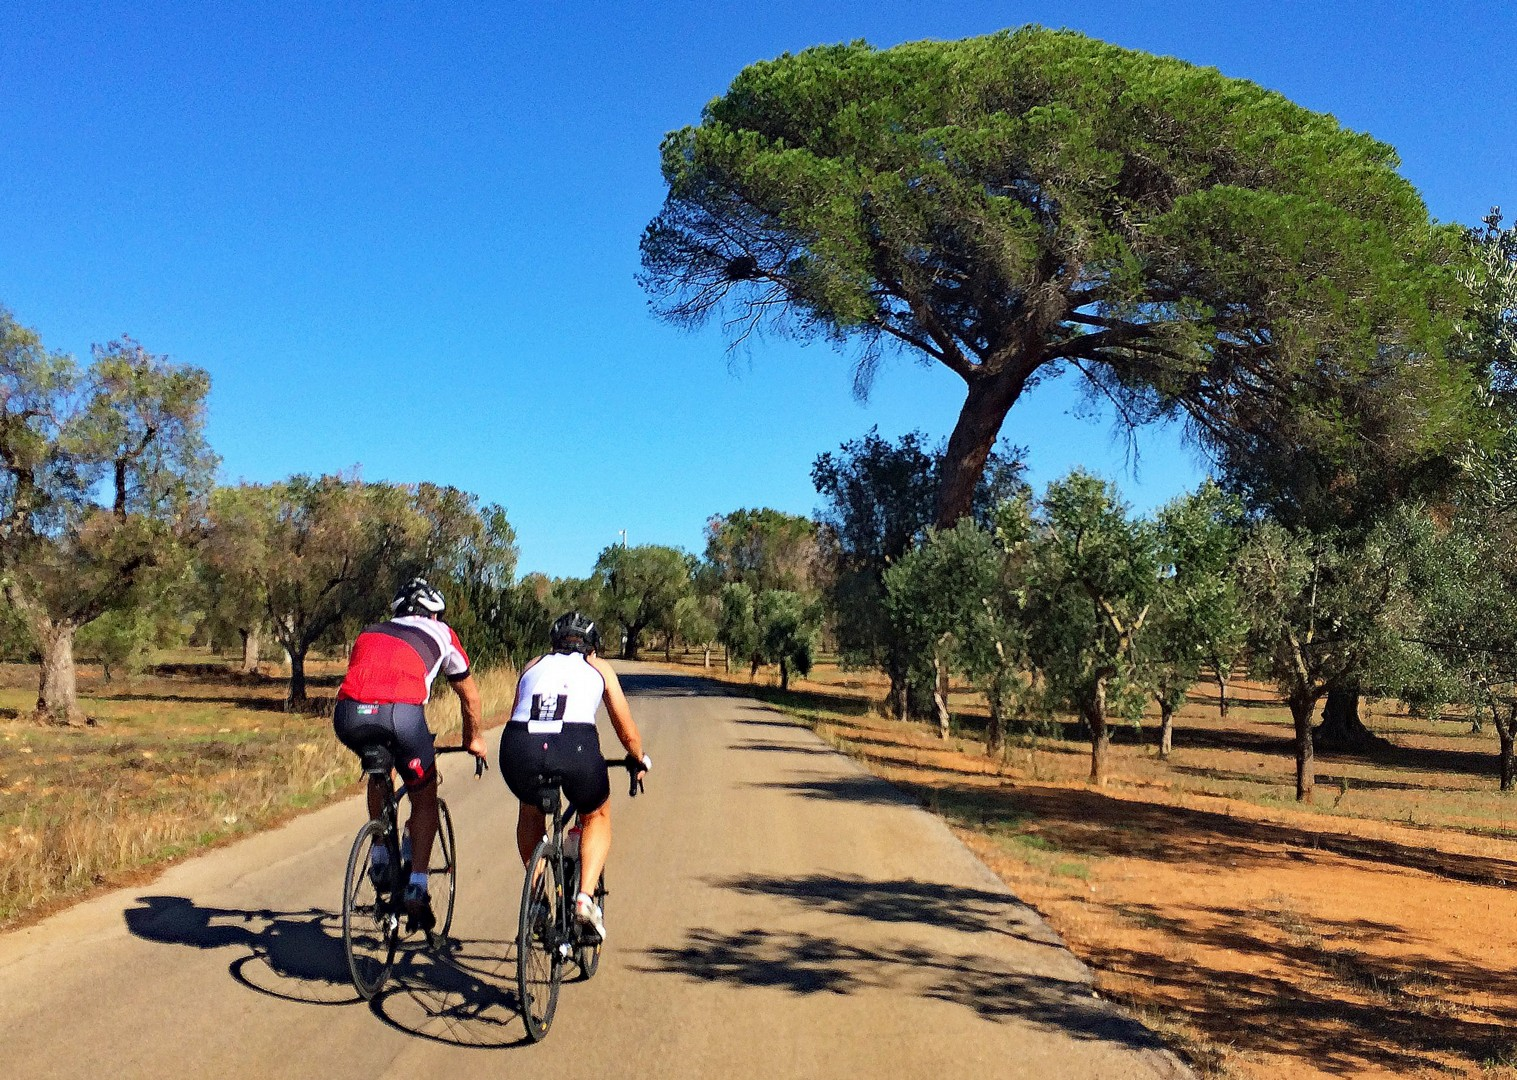 guided-road-cycling-holiday-through-italy.jpg - Italy - Grand Traverse - North to South - Guided Road Cycling Holiday (17 days) - Road Cycling